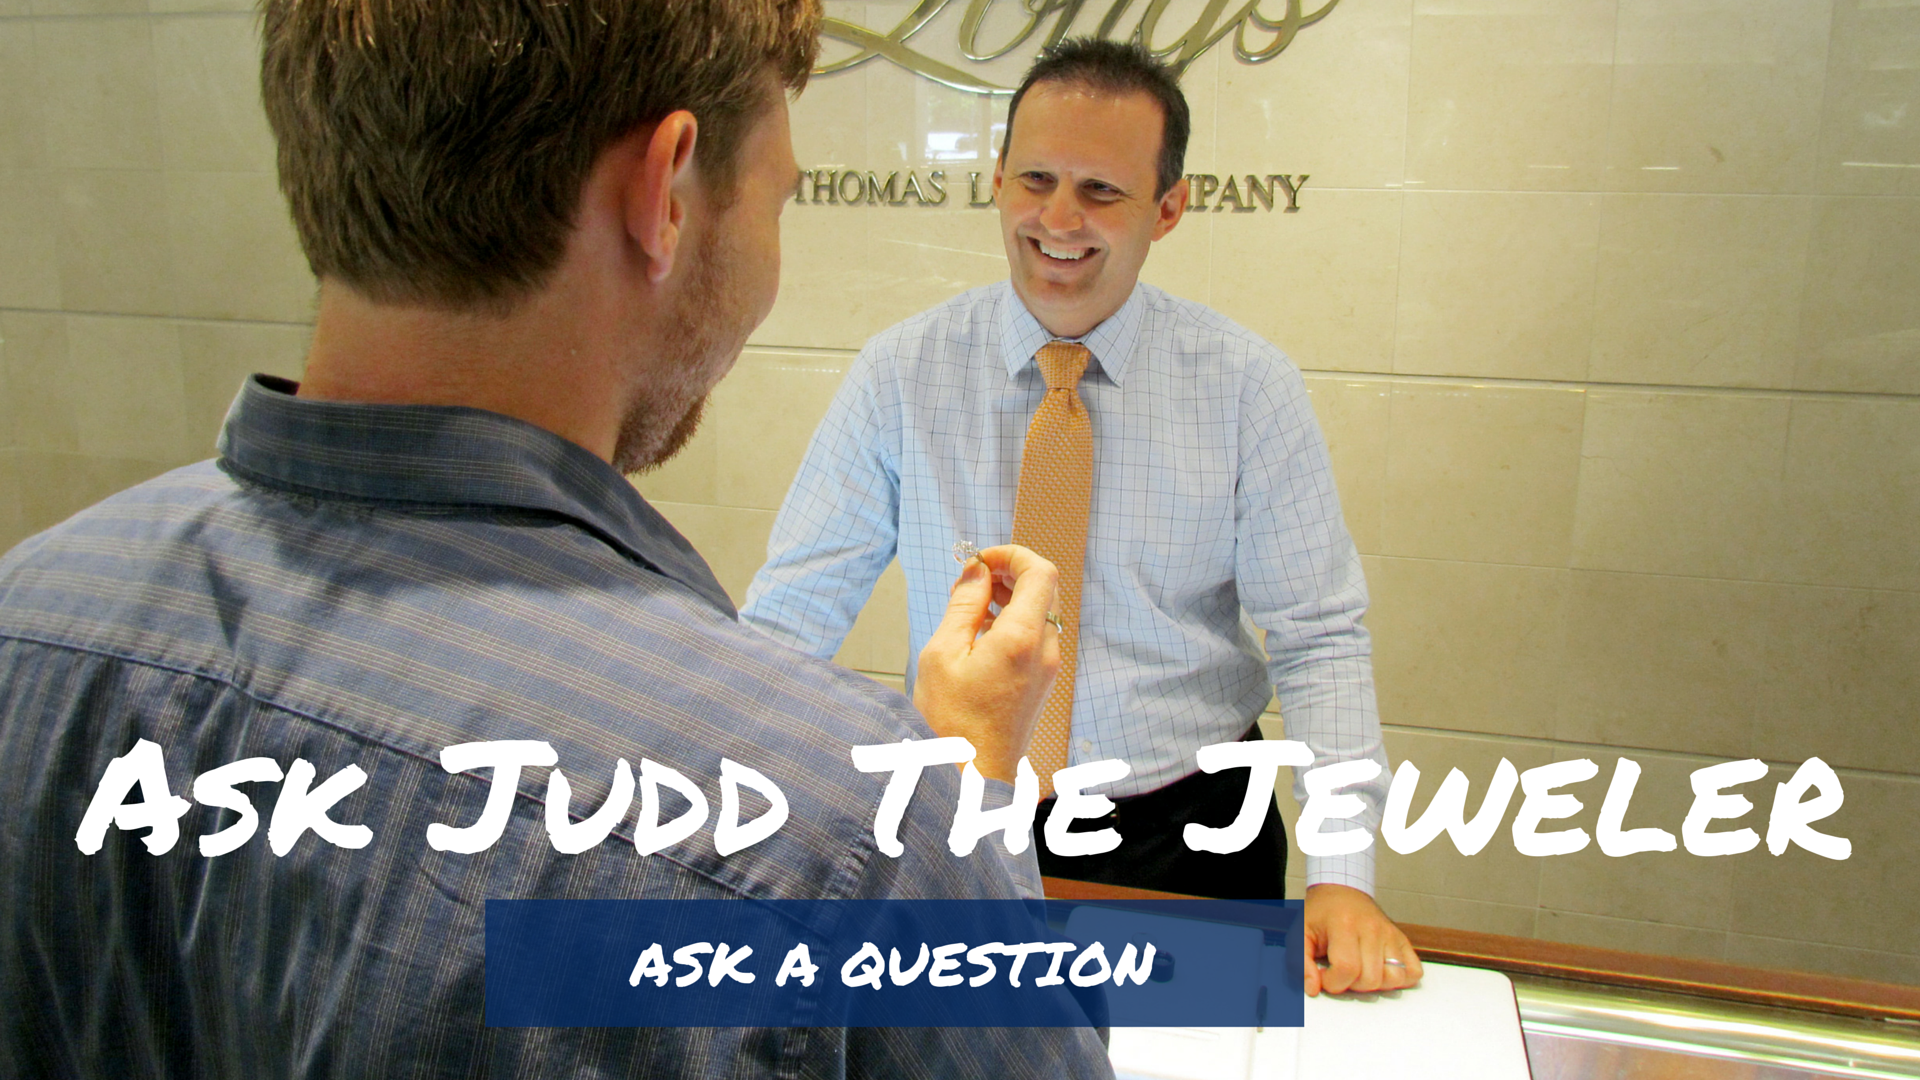 Ask_Judd_The_Jeweler_3.png